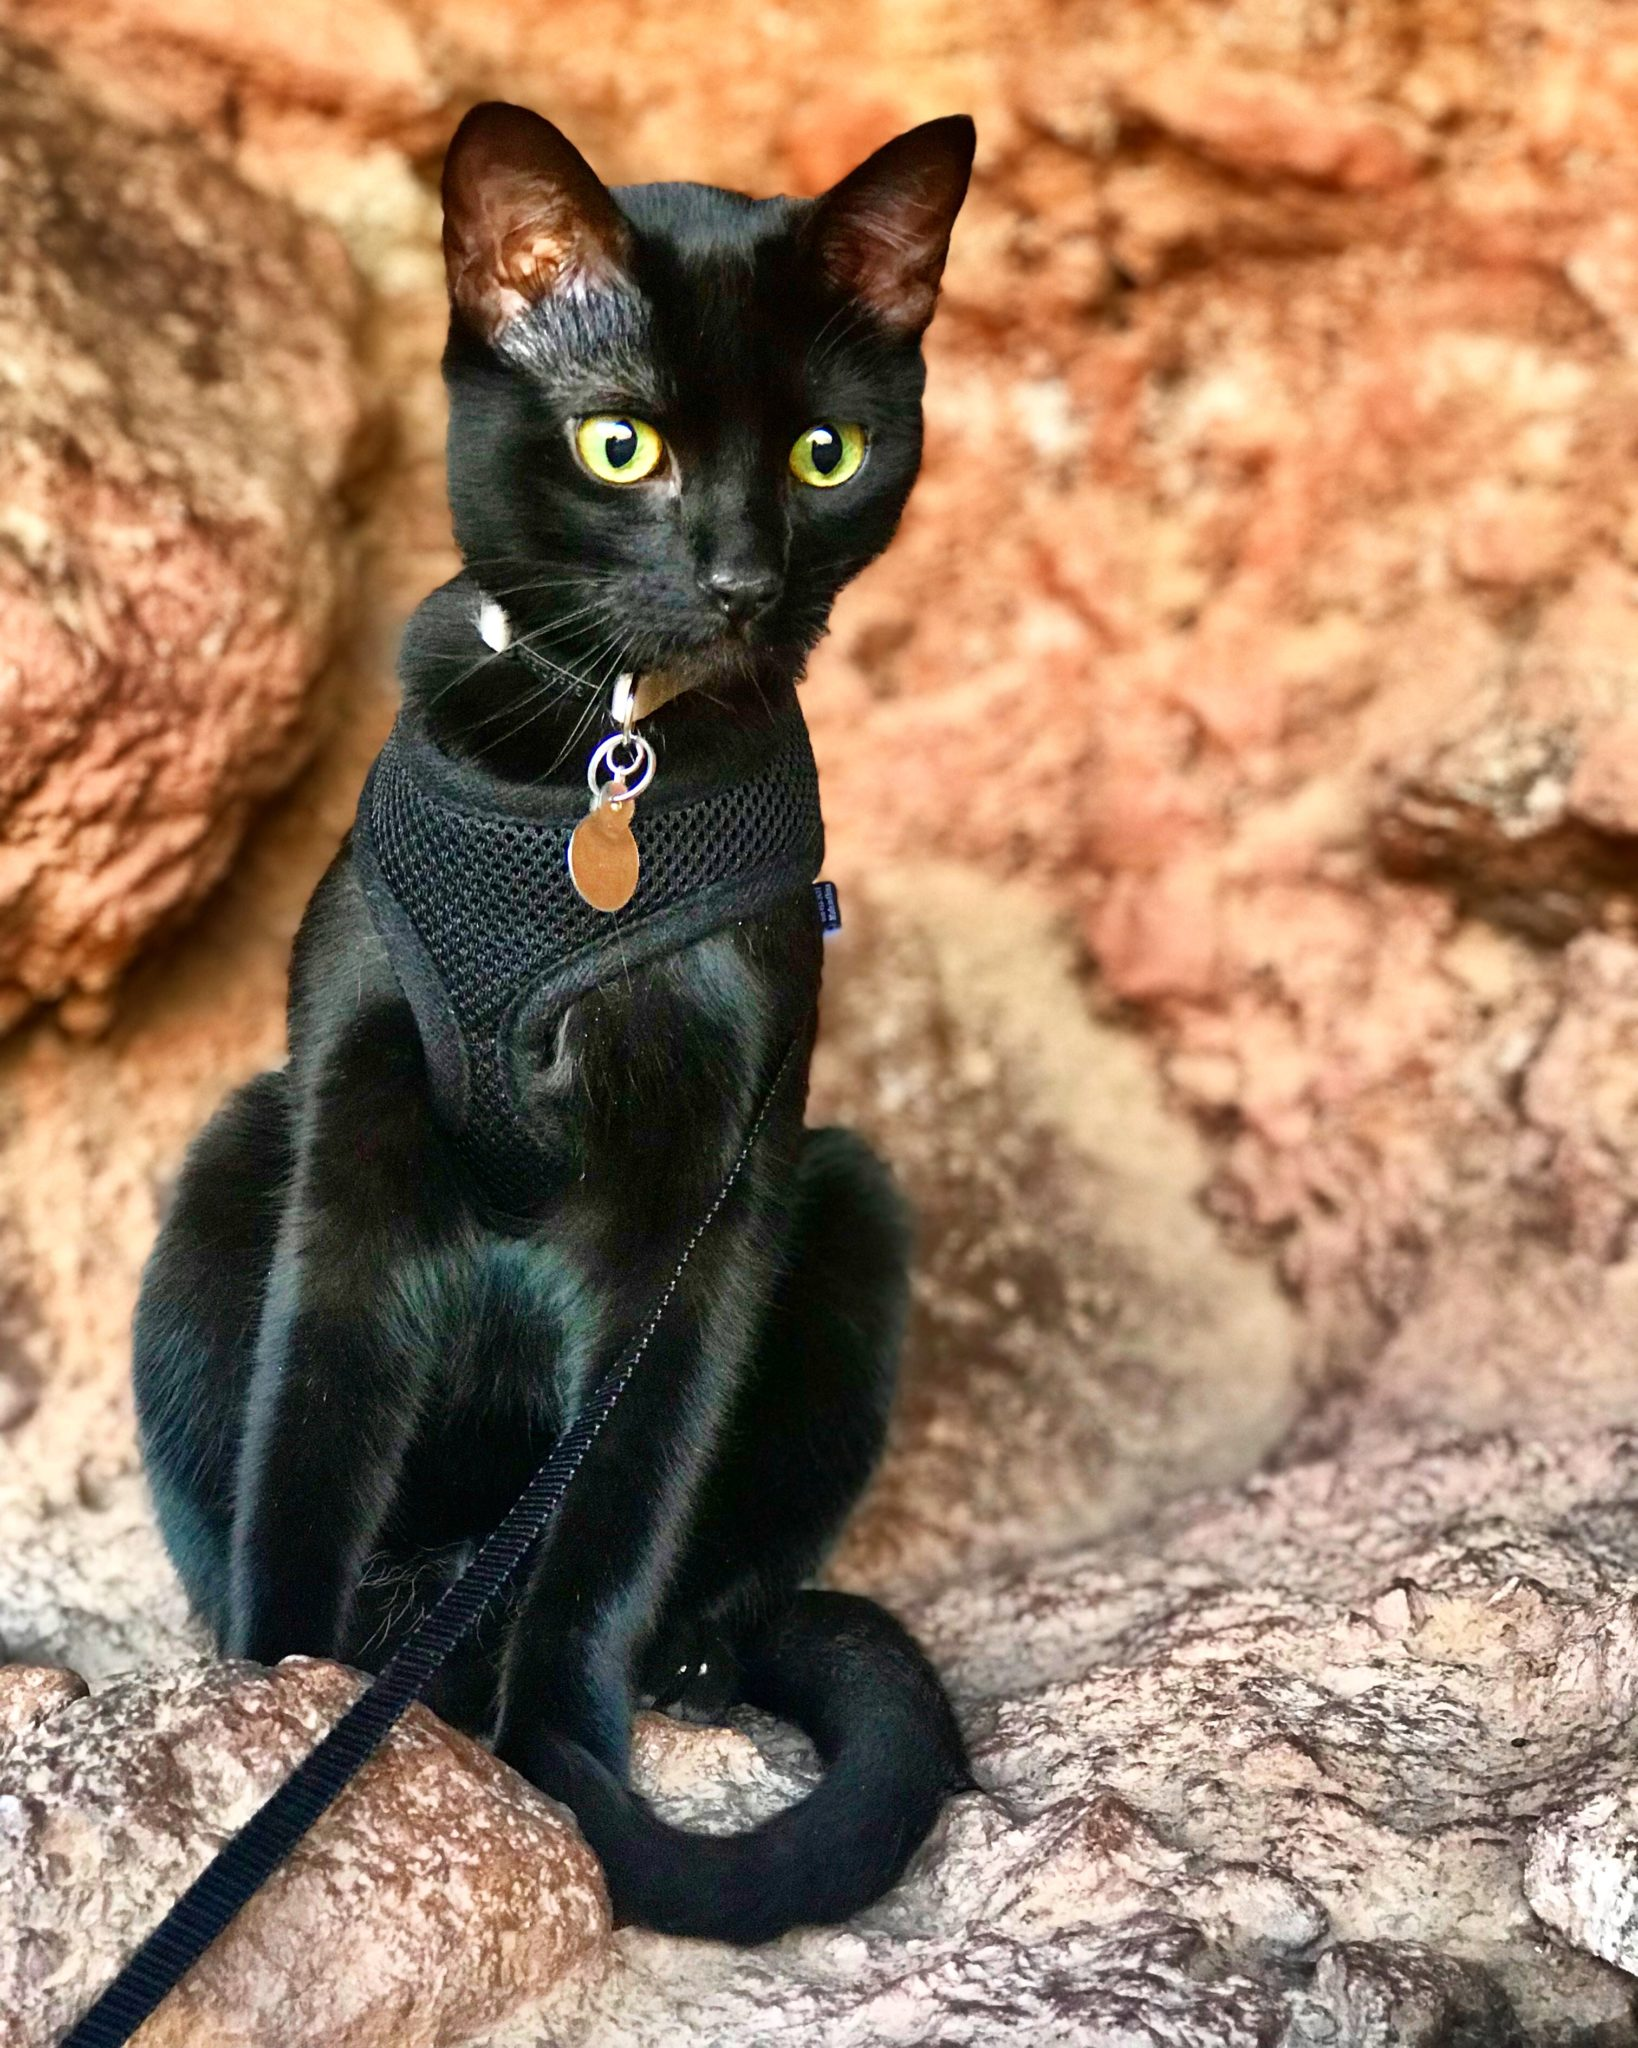 Cash adventure cat poses on Arizona rocks